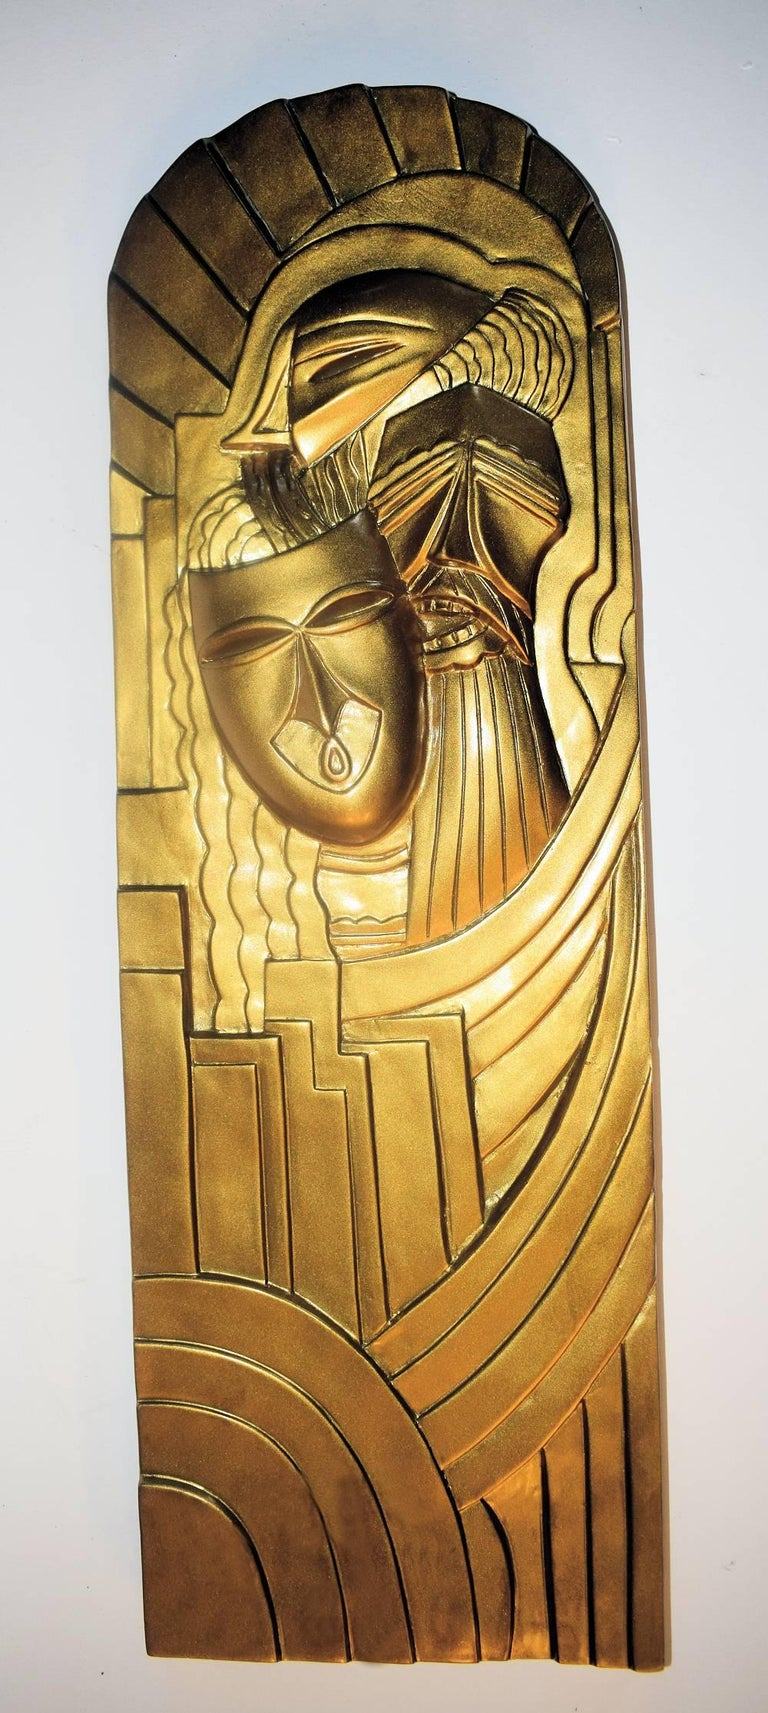 Pair of Art Deco \'Folies Bergeres\' Wall Plaques For Sale at 1stdibs